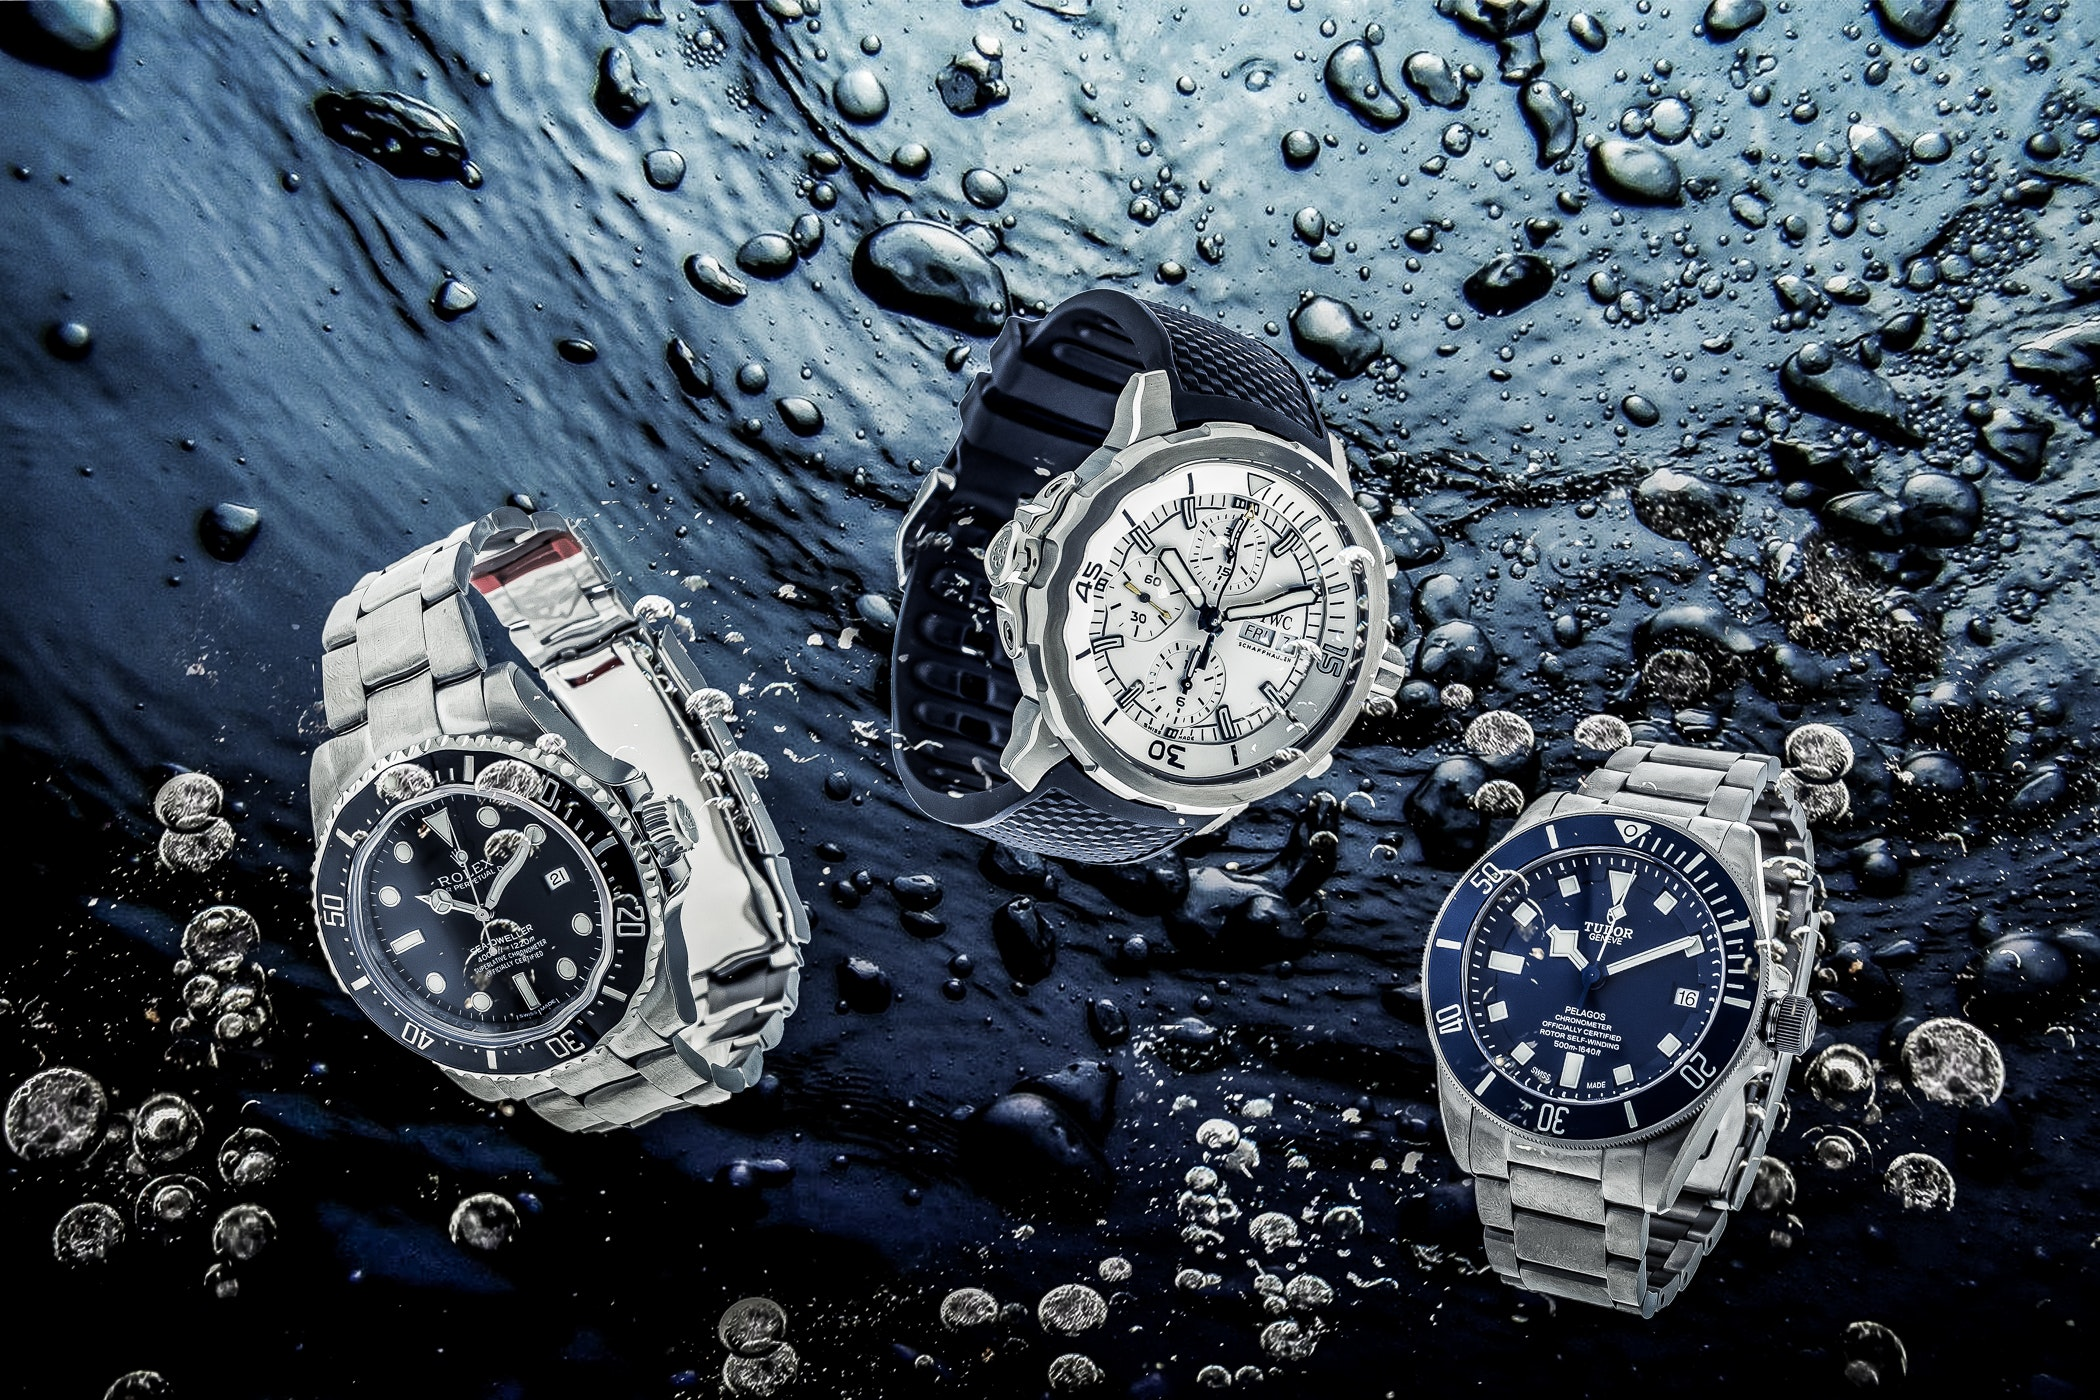 Rolex Submariner, Omega Seamaster and Beyond: We Dive Into The Top 10 Greatest Water Watches of All Time